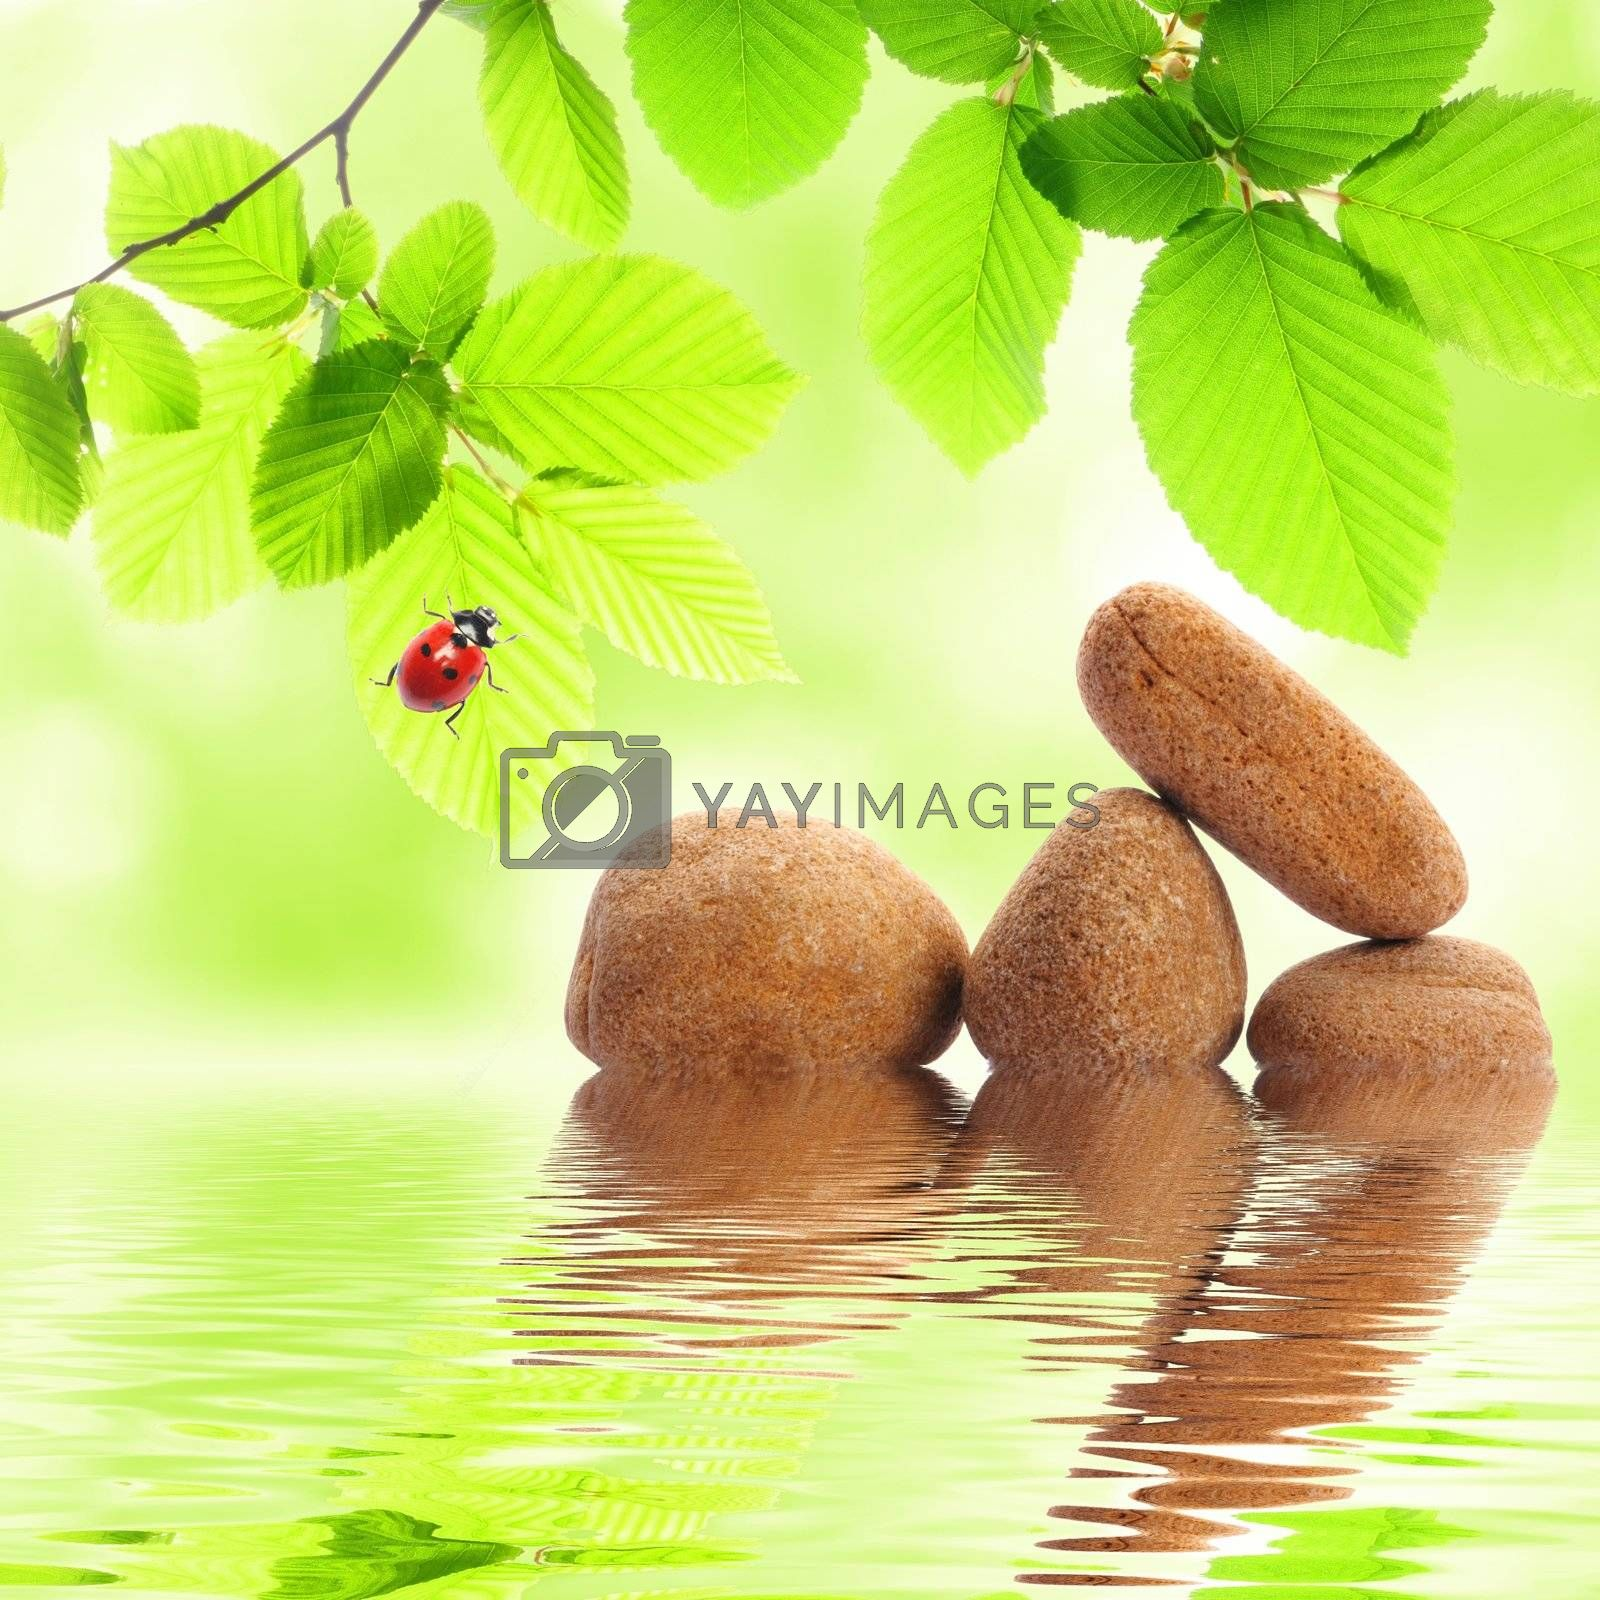 zen stones and green summer leaves with water reflection